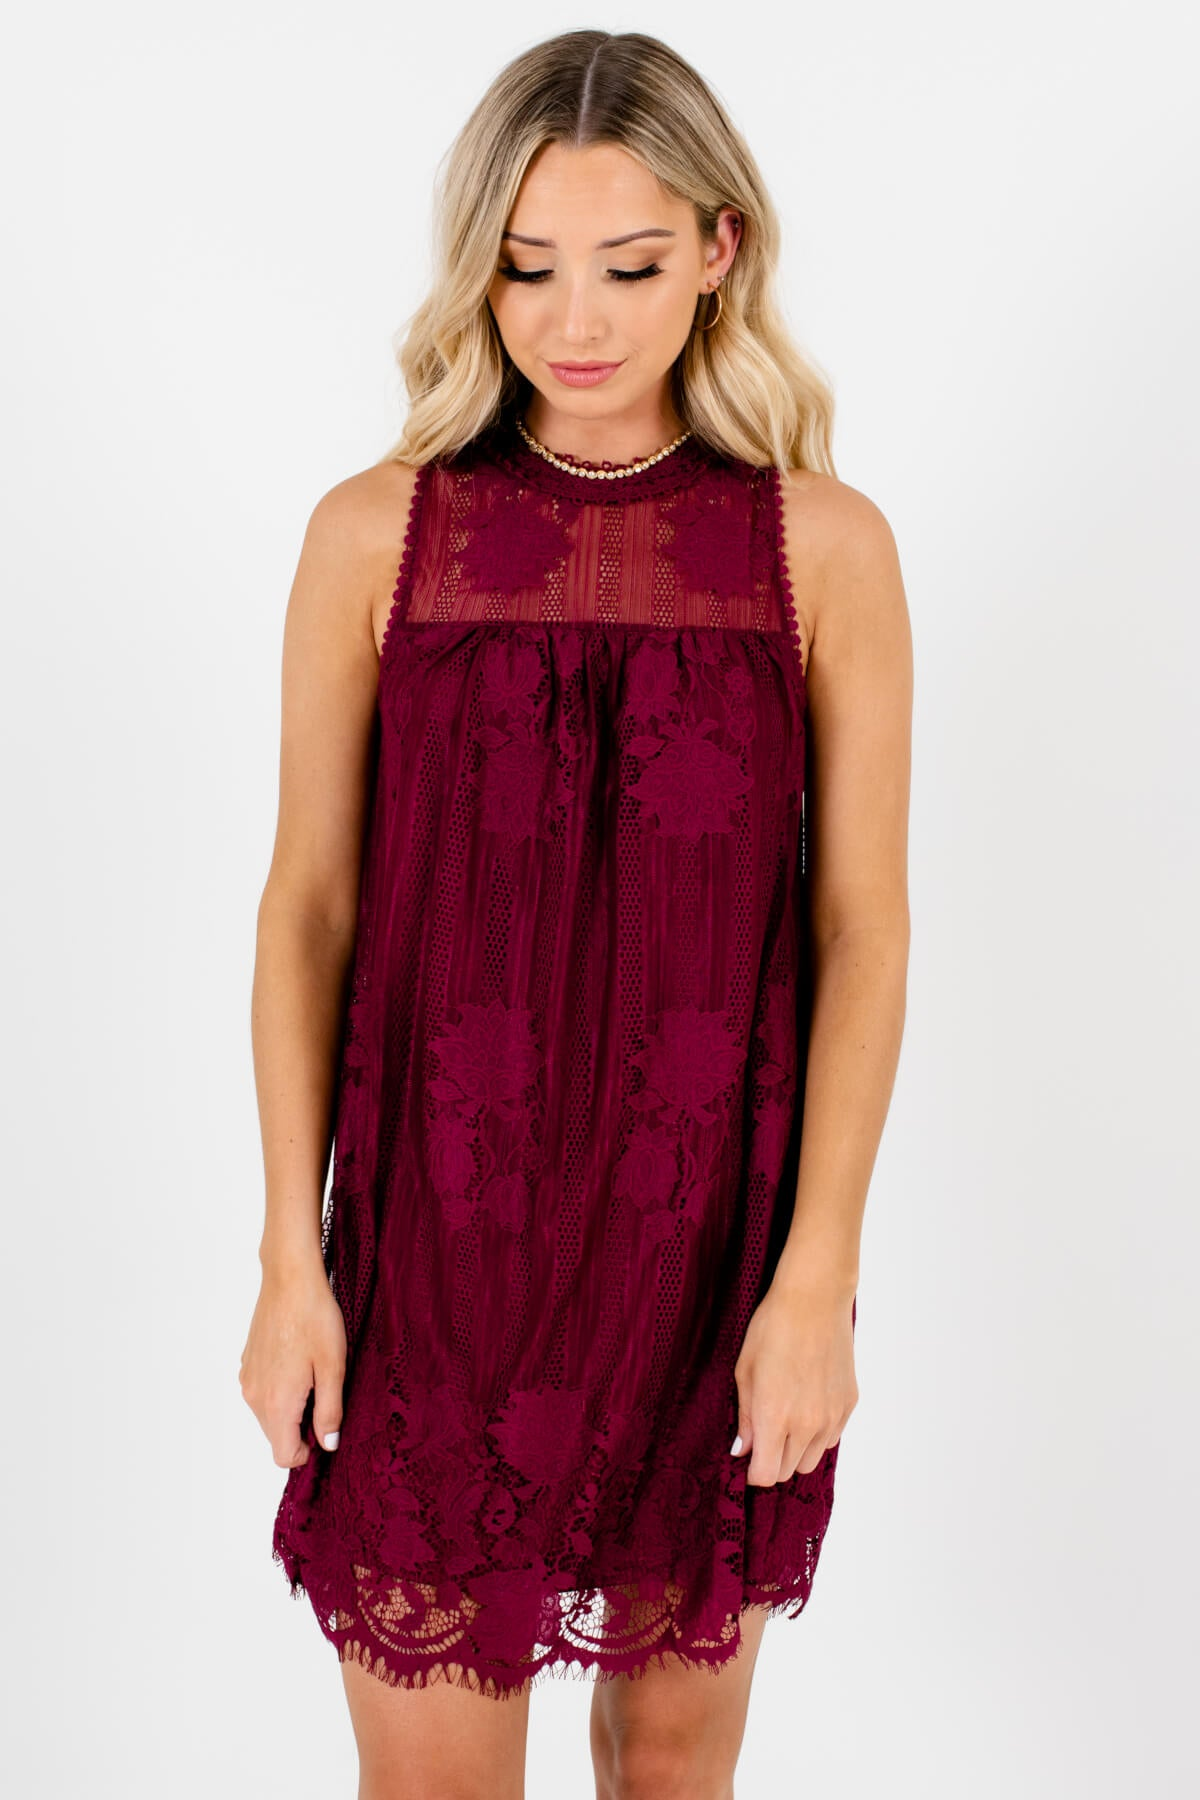 Burgundy Red Lace Overlay Boutique Mini Dresses for Women